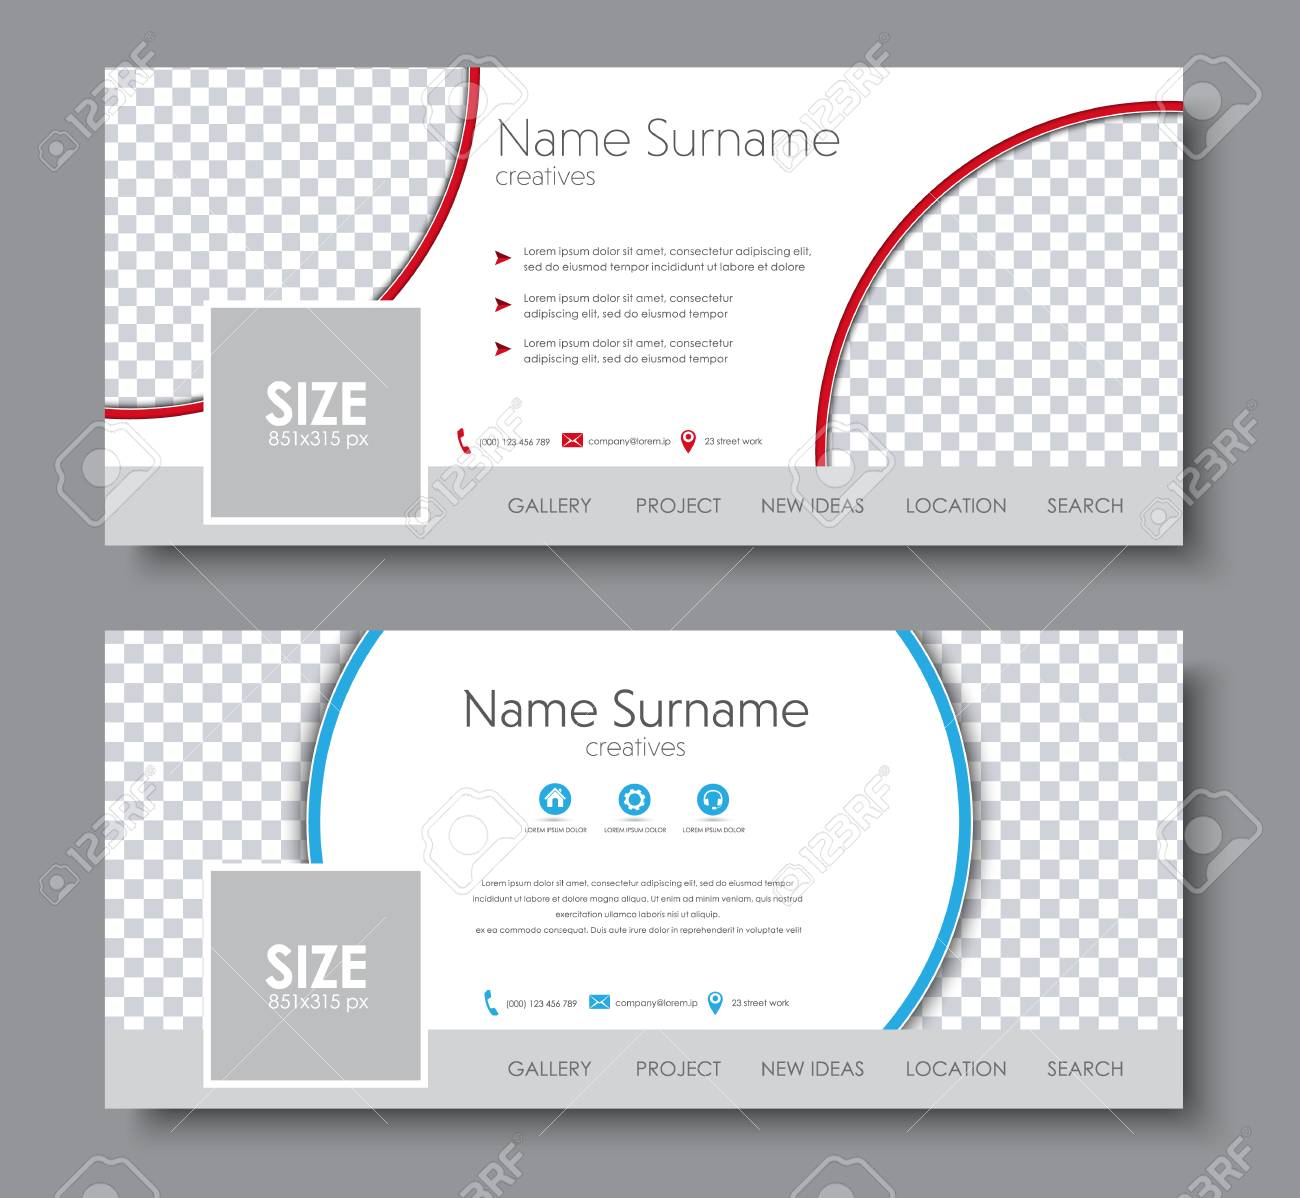 Set Of Banners For The Social Network. Template With Different ...